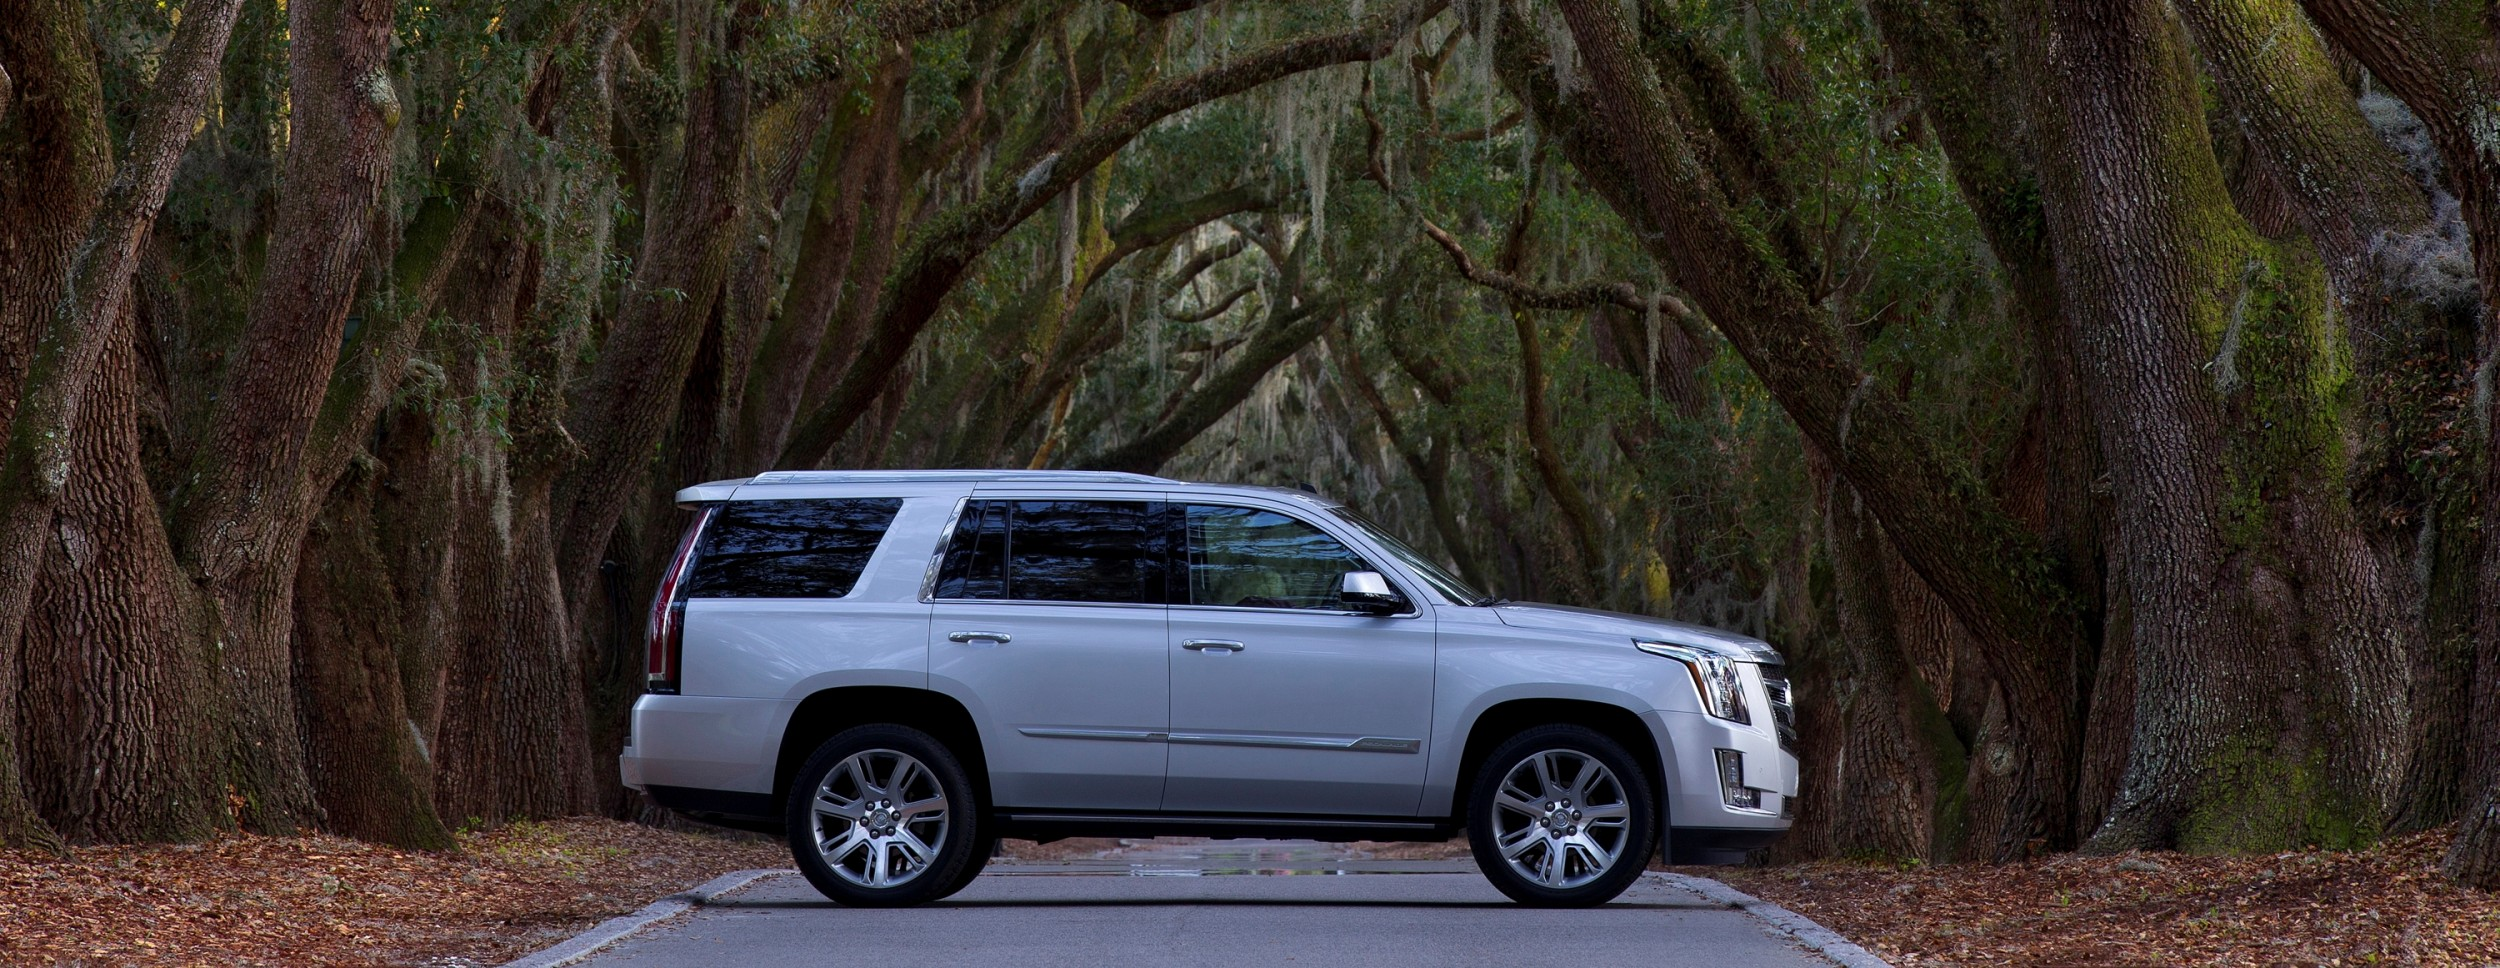 Sound Ford Renton >> Is Escalade Body Changing In 2014 | Upcomingcarshq.com